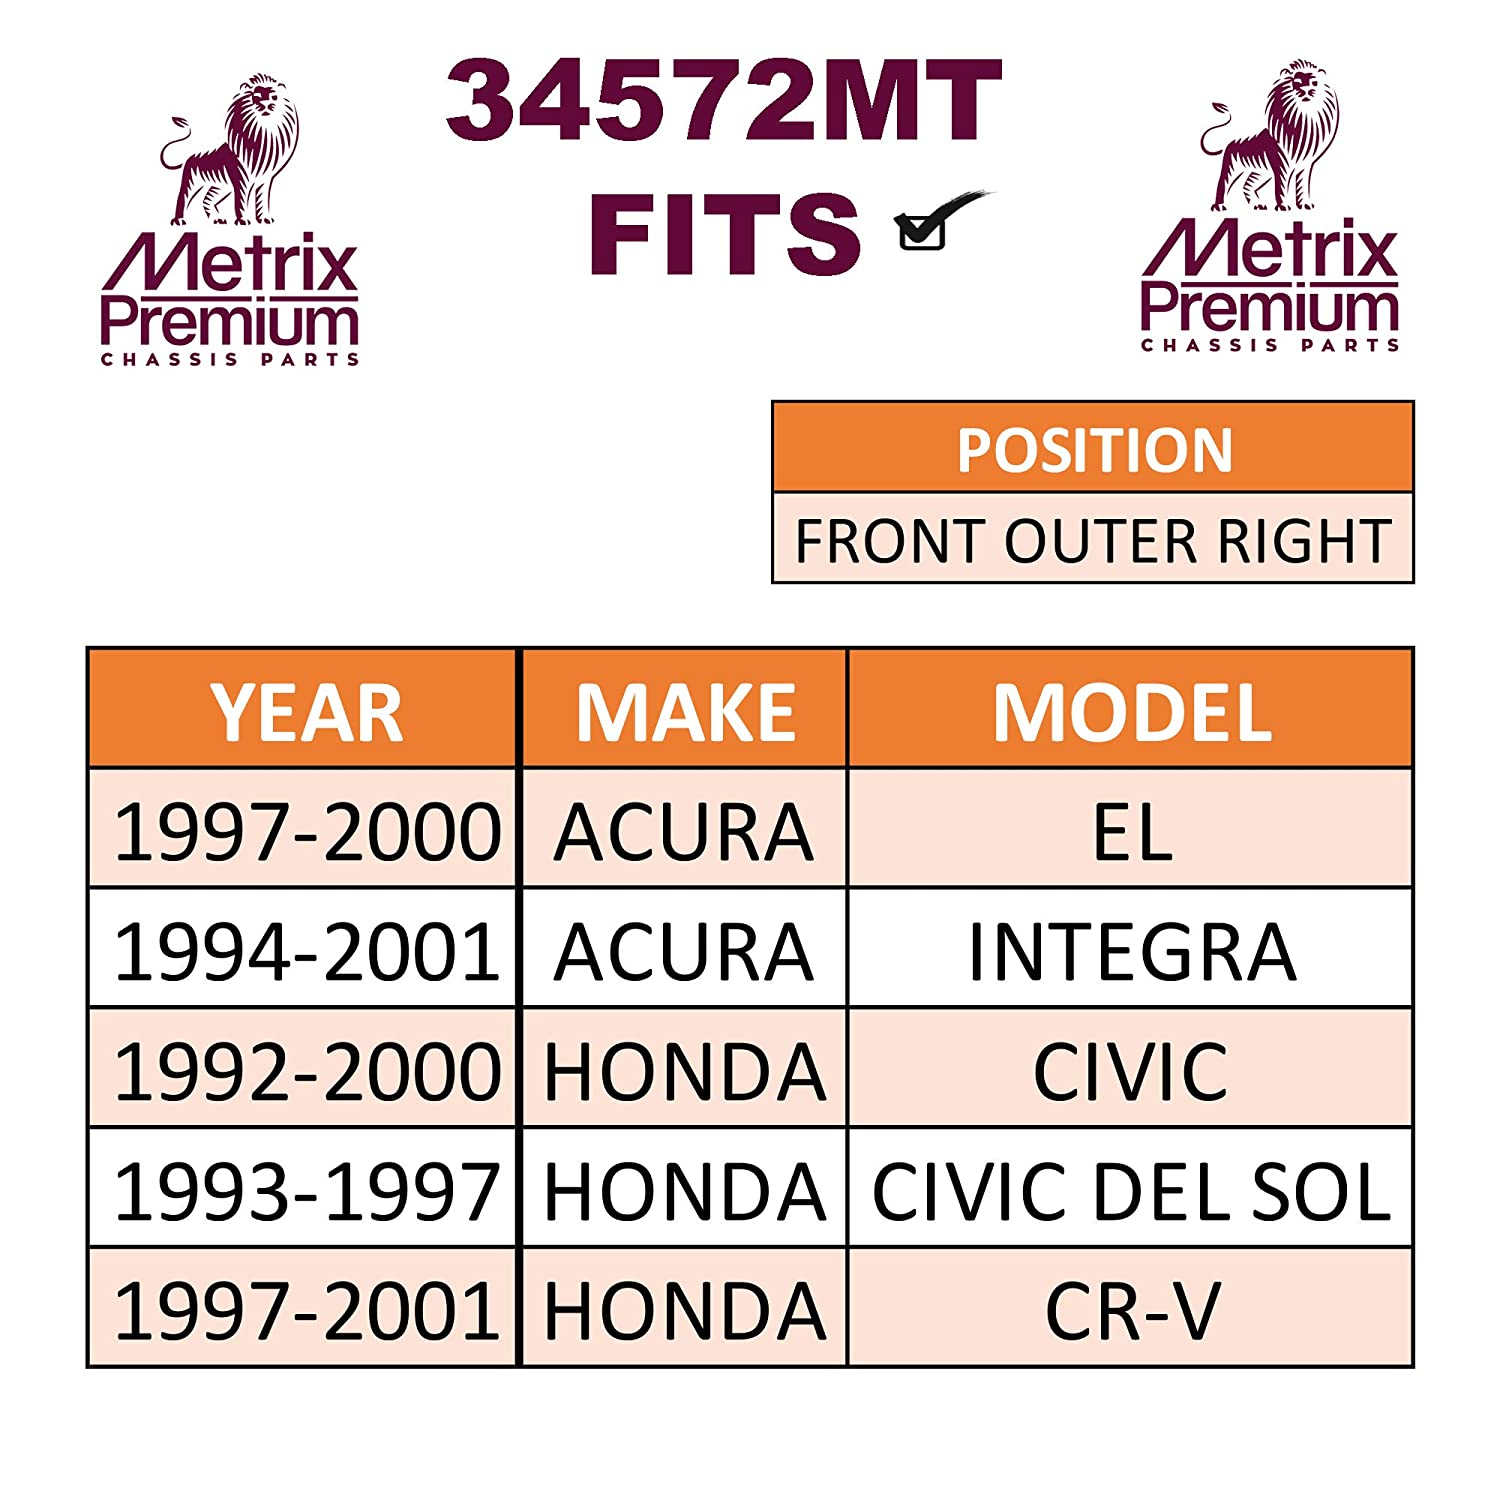 1997-2000 Acura EL ES3331R 1994-2001 Acura INTEGRA For 1992-2000 Honda CIVIC Made in TURKEY METRIX PREMIUM 34572MT Front Right Outer Tie Rod End 1997-2001 Honda CR-V